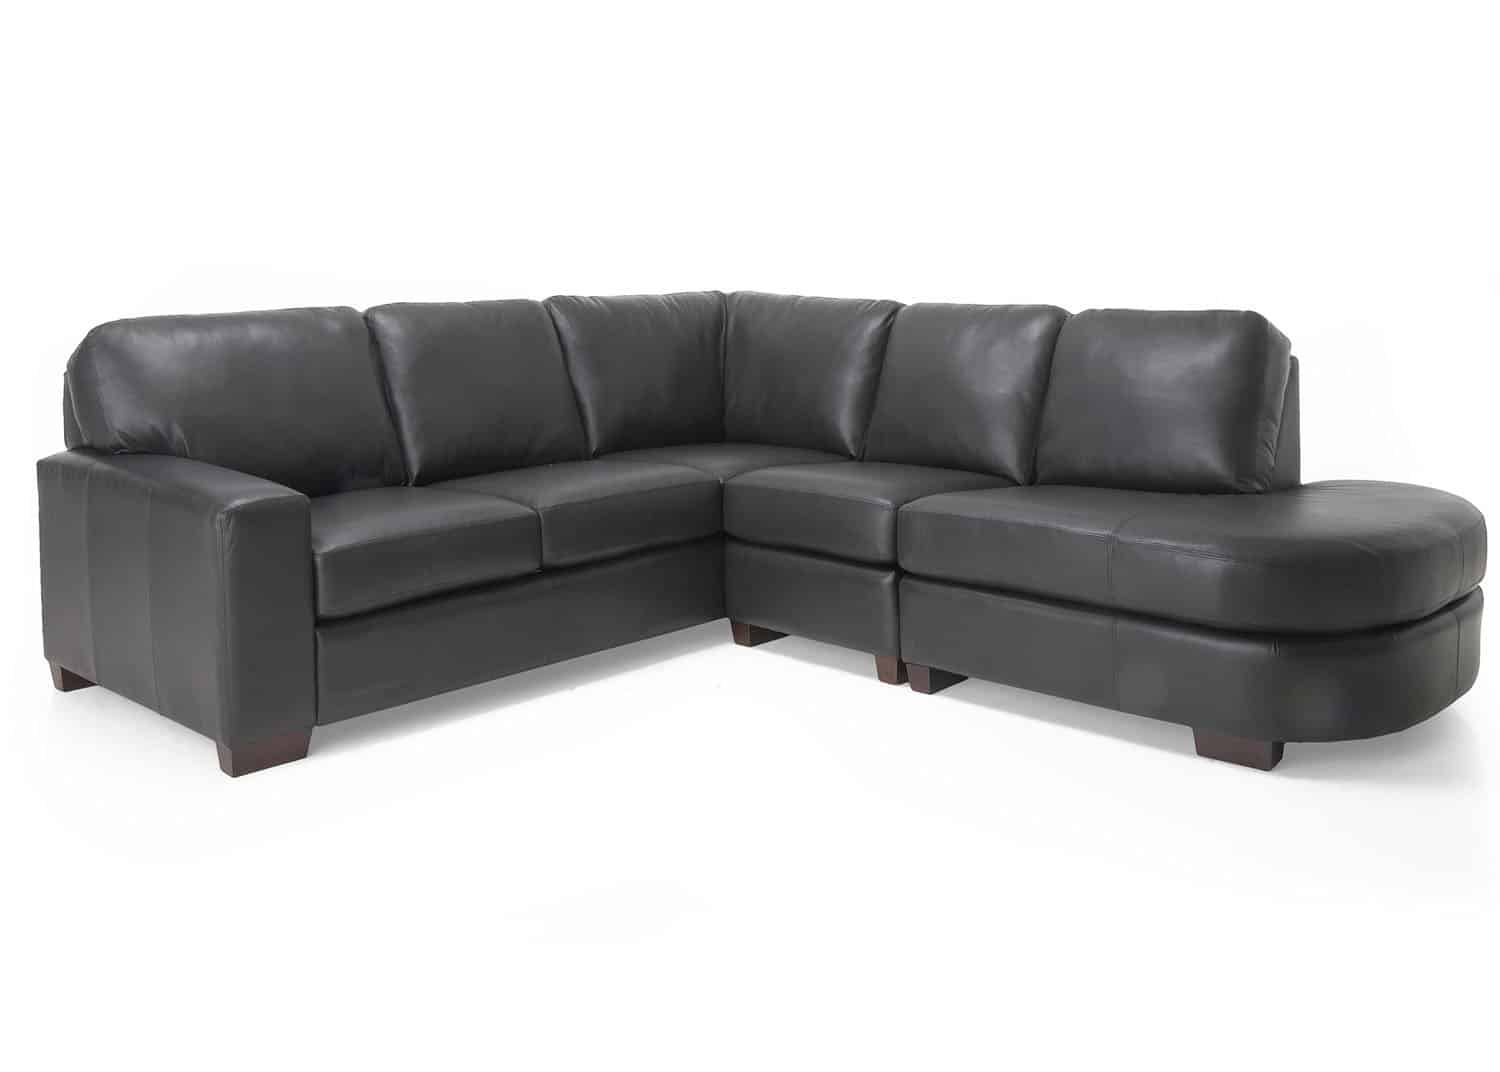 Cologne leather sectional sofa mobilart decor high end for Sofa cuir liquidation montreal